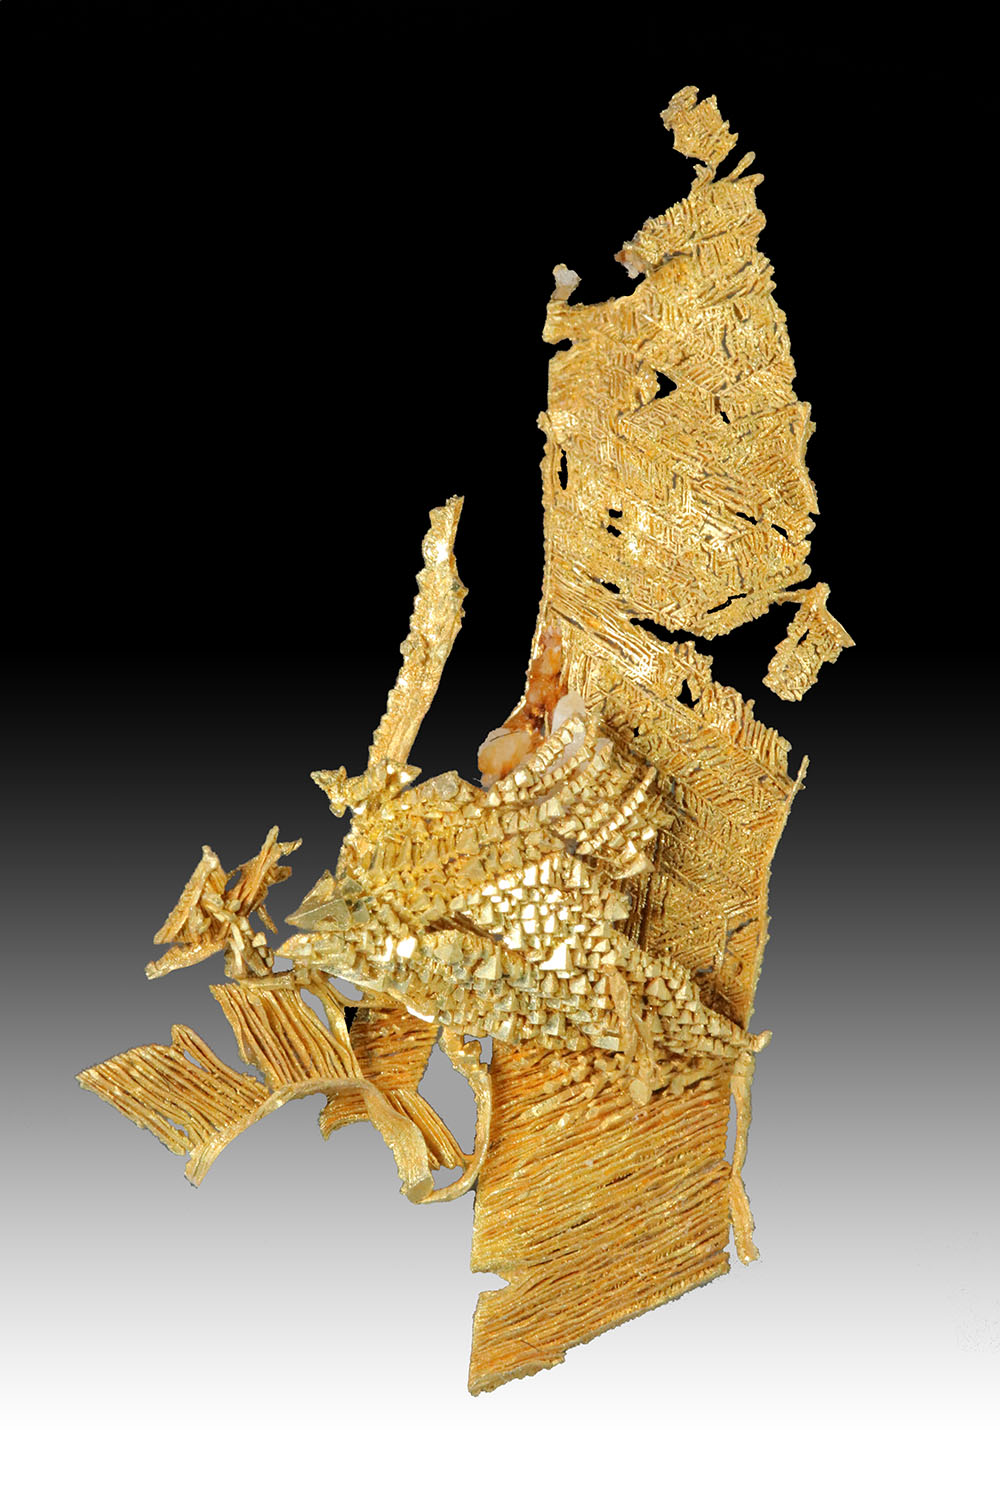 Magnificent Trigon Cluster on Wire Gold - Amazing Gold Specimen